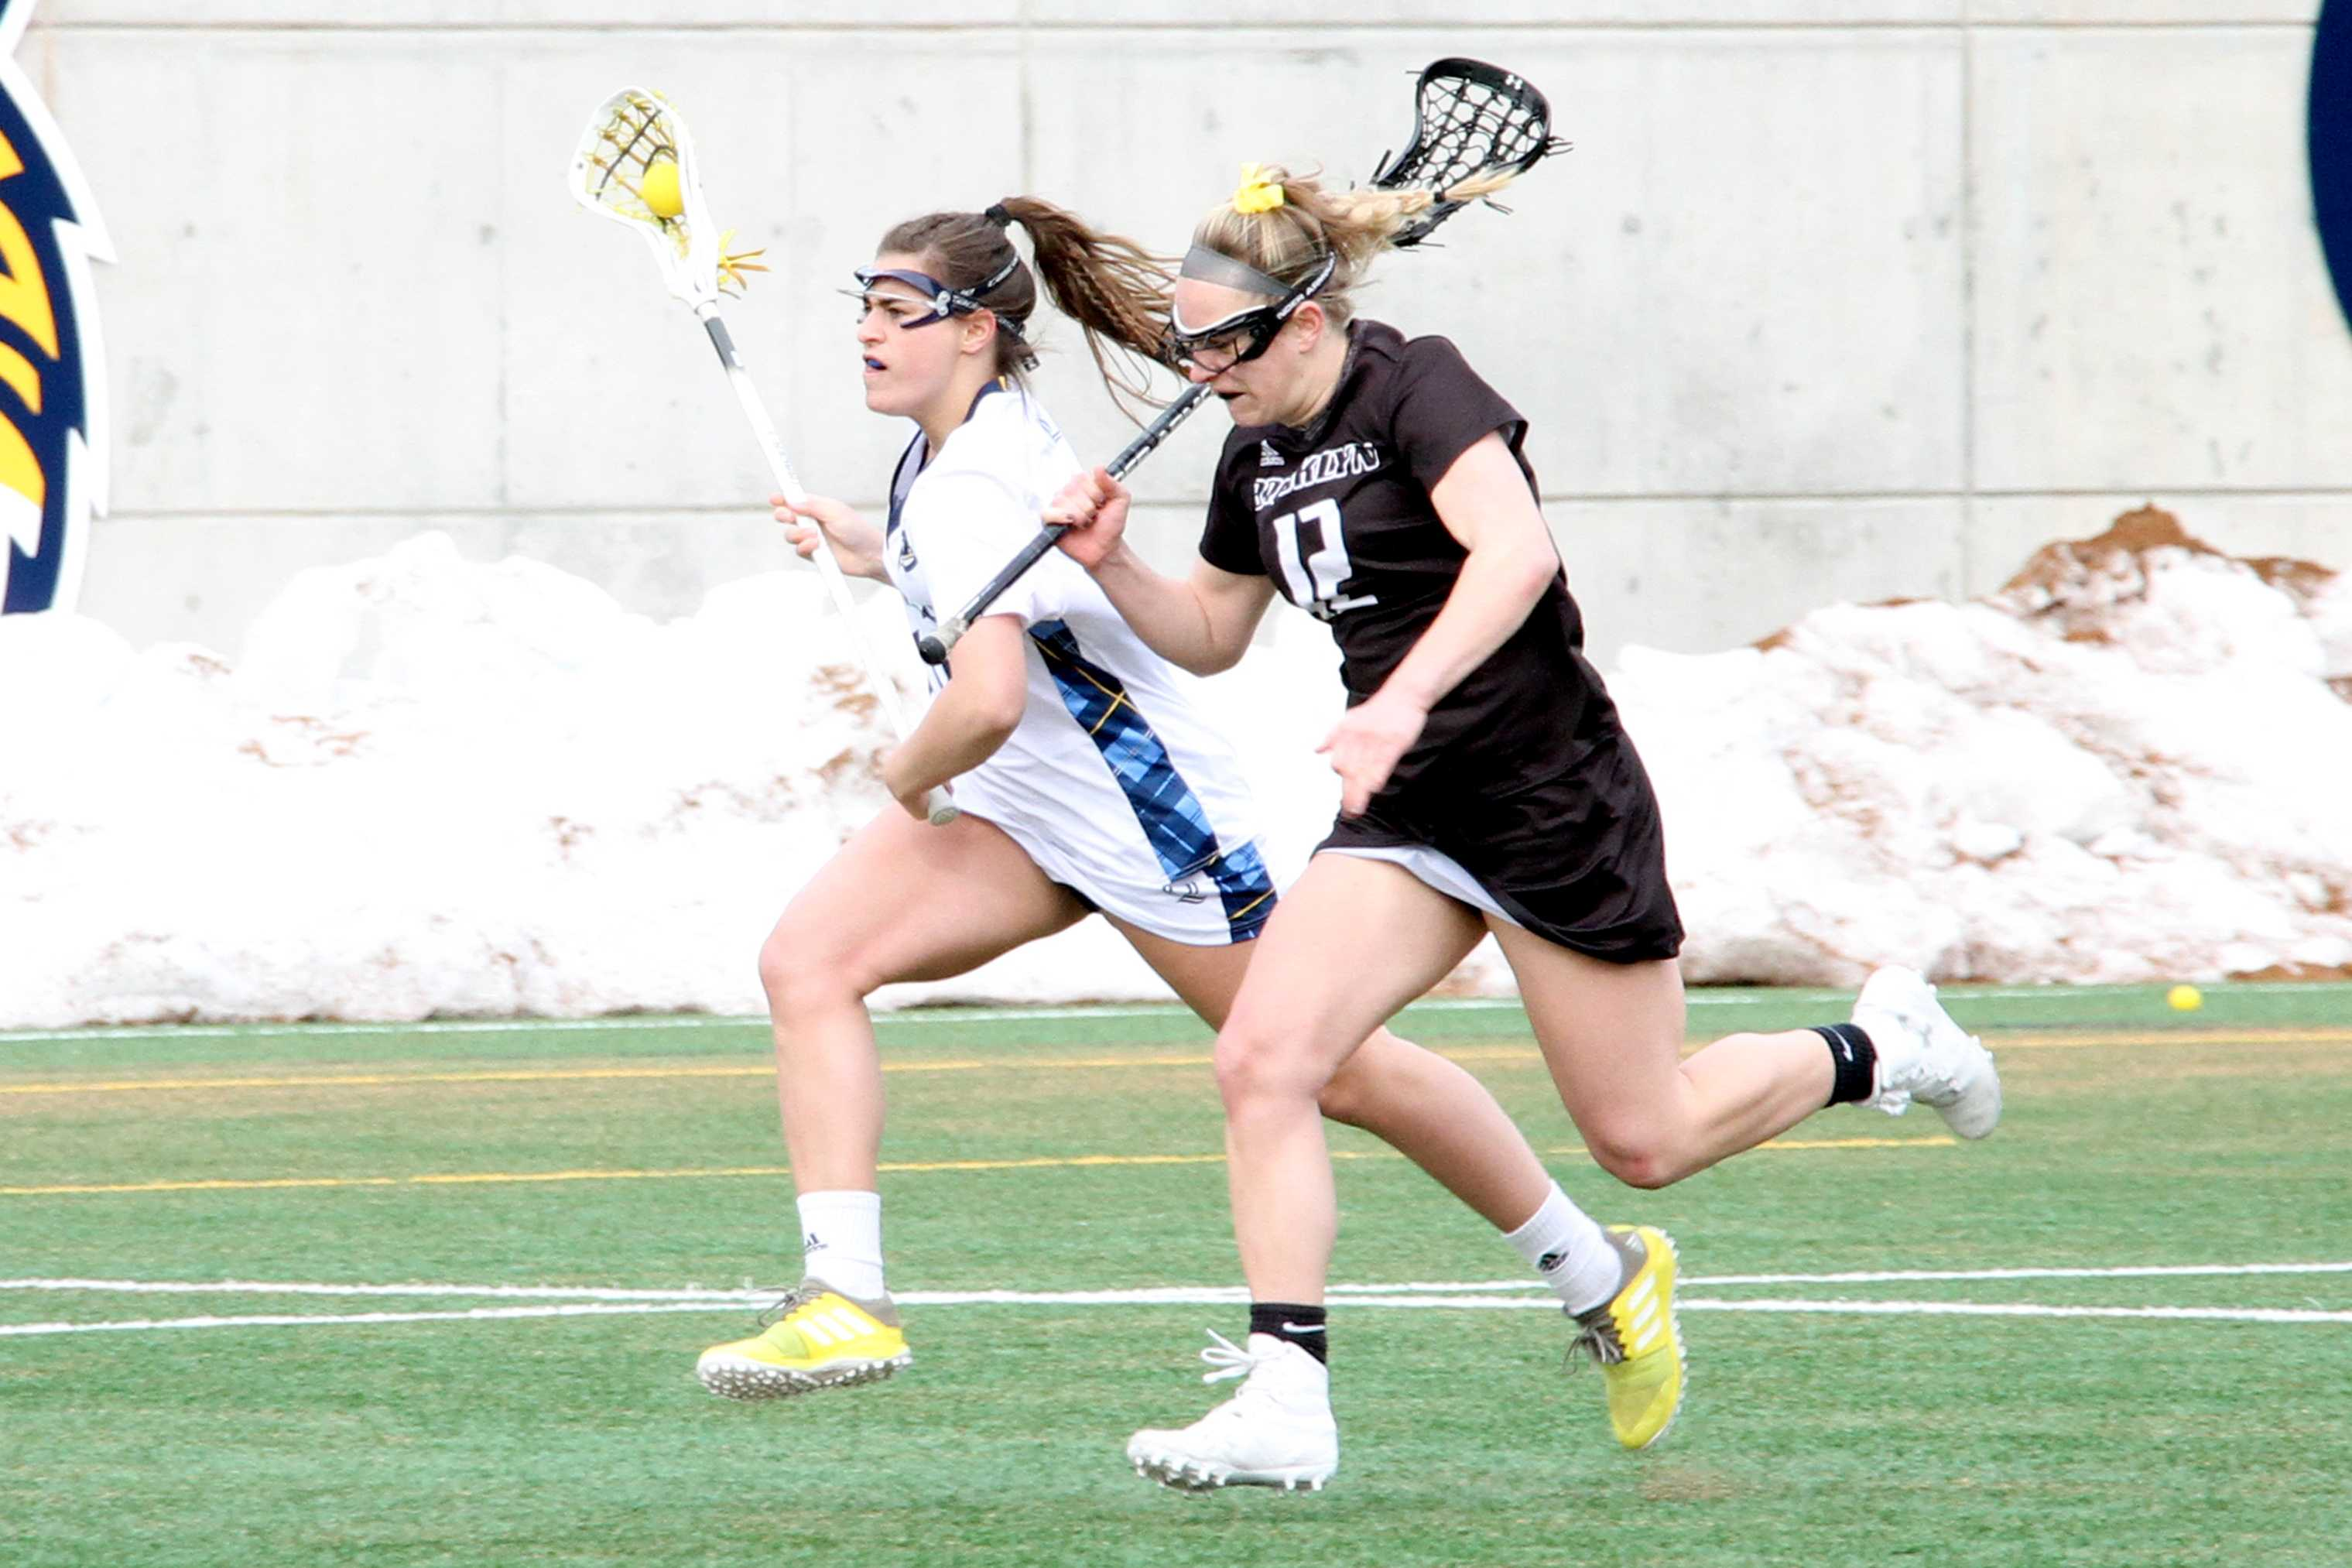 Quinnipiac women's lacrosse picks up second win of the year on Saturday